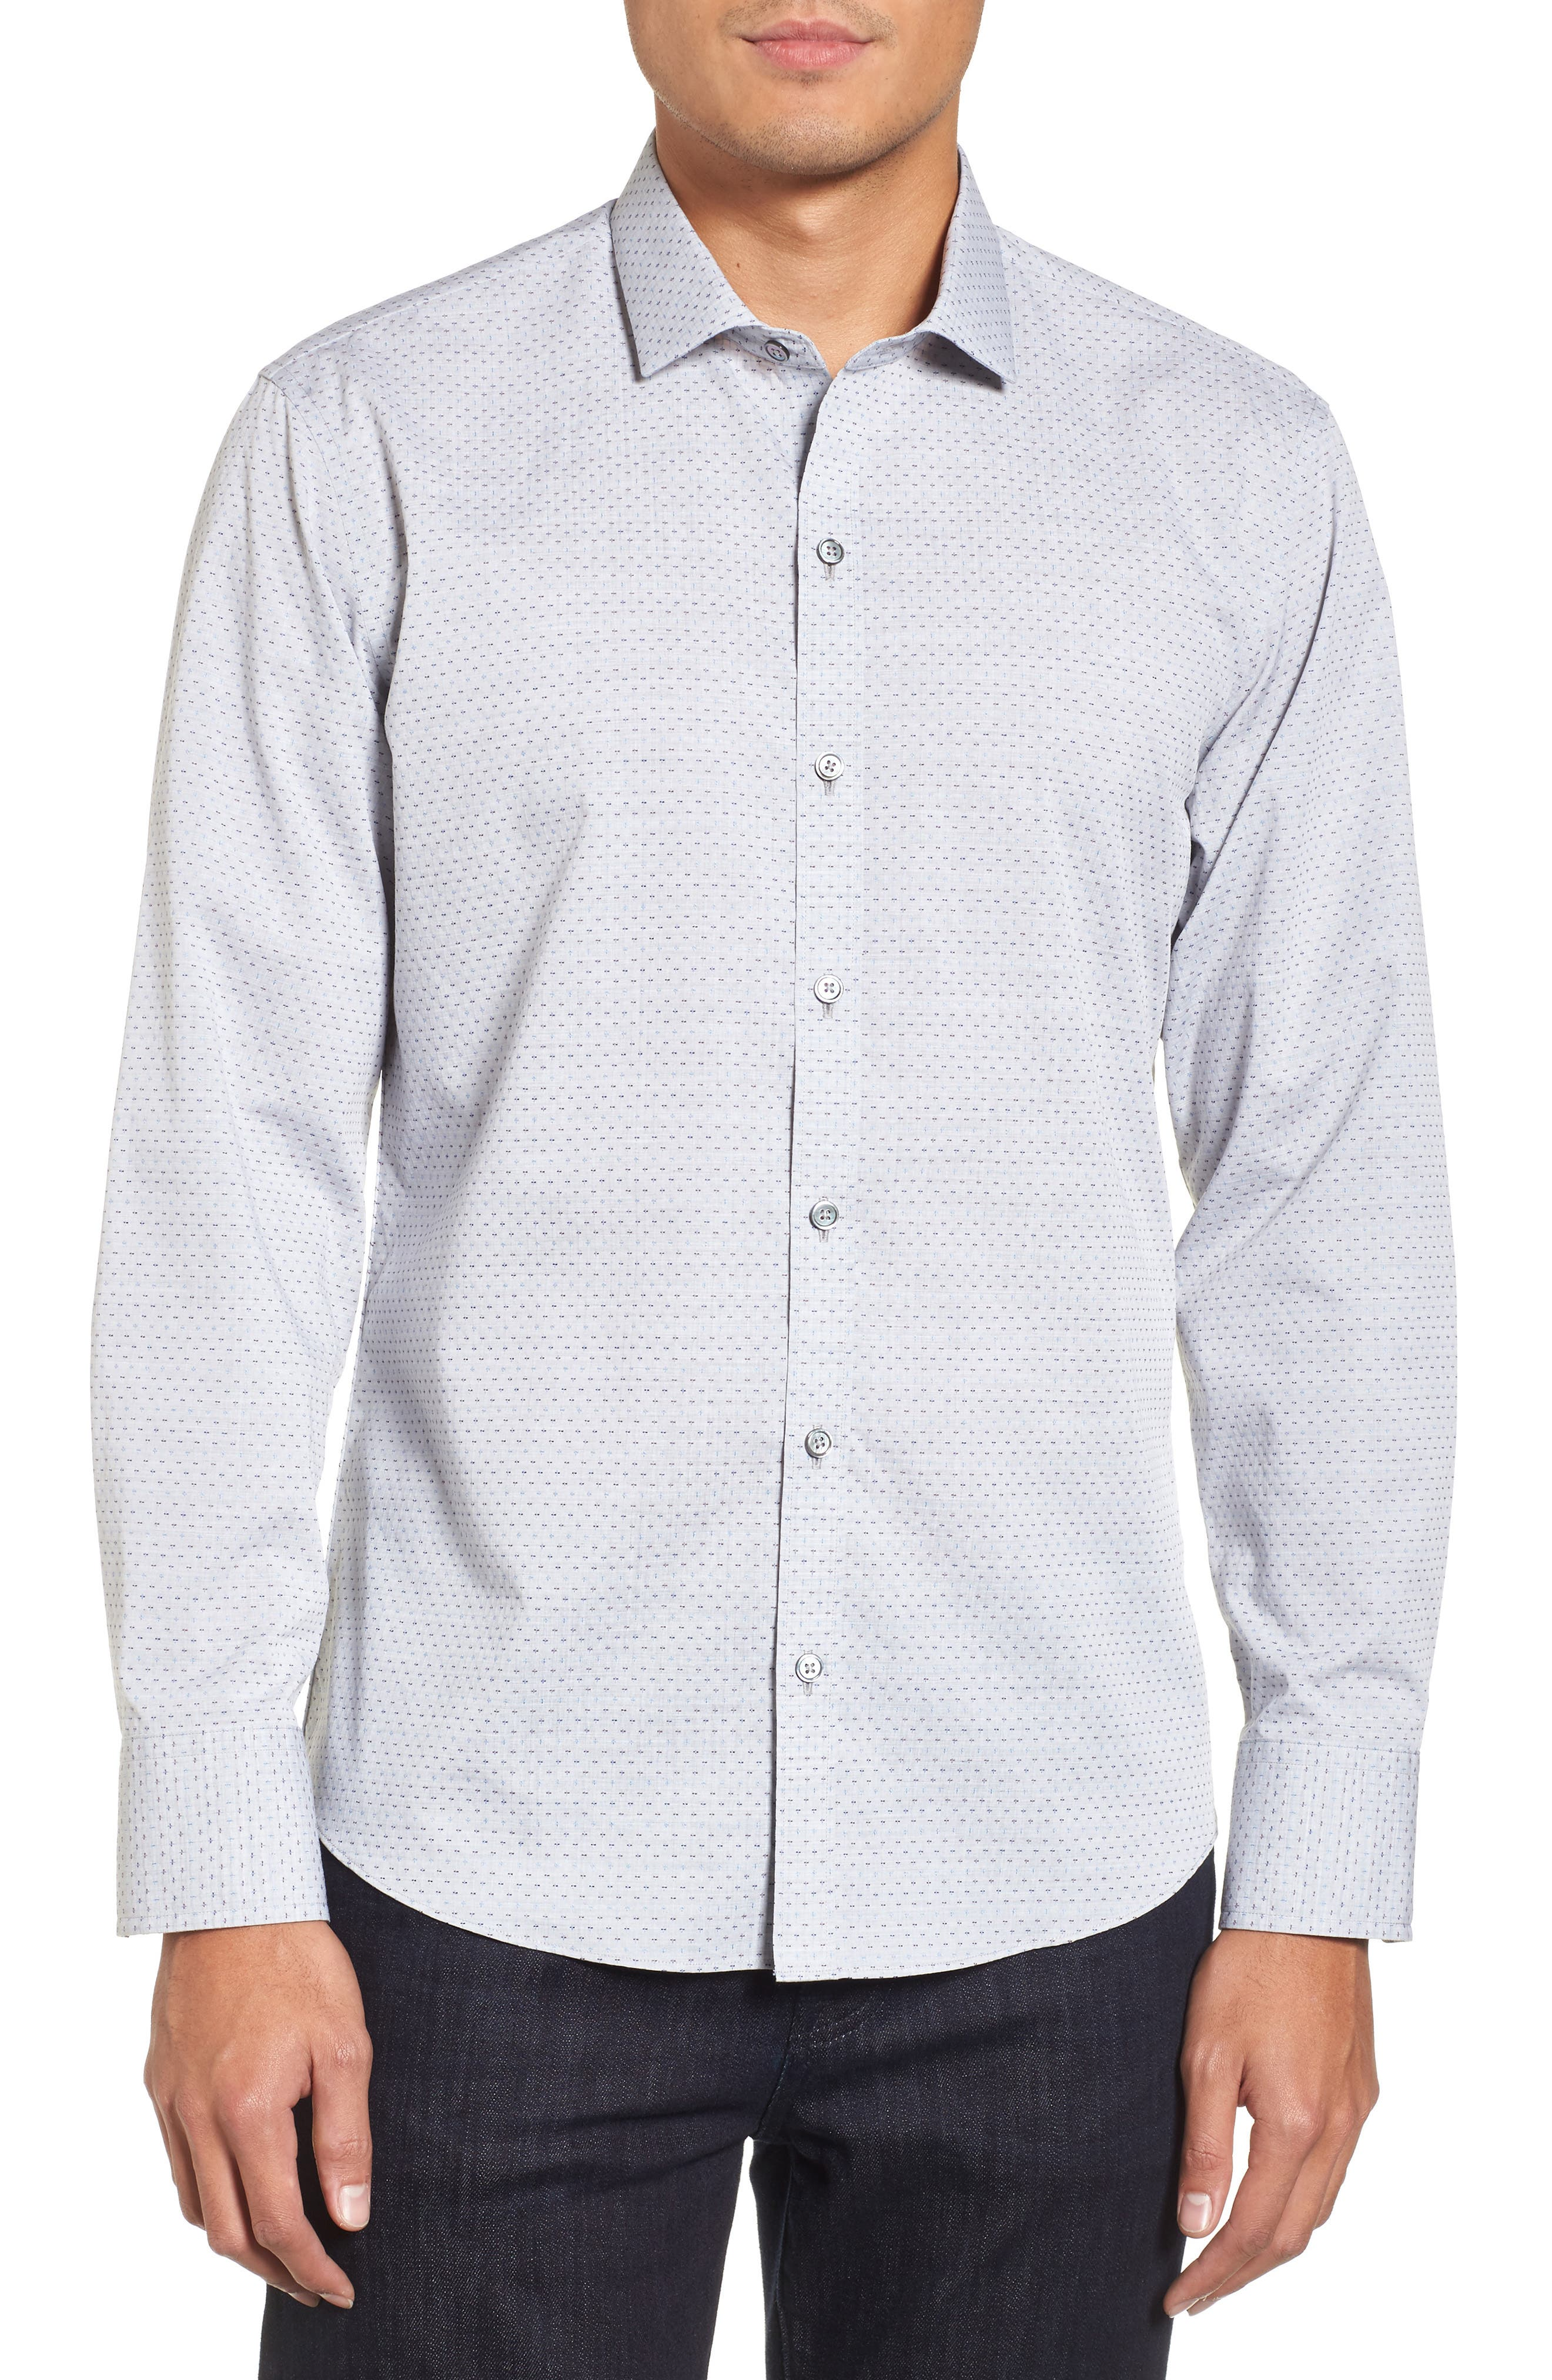 Alternate Image 1 Selected - Zachary Prell Atila Slim Fit Dobby Woven Sport Shirt